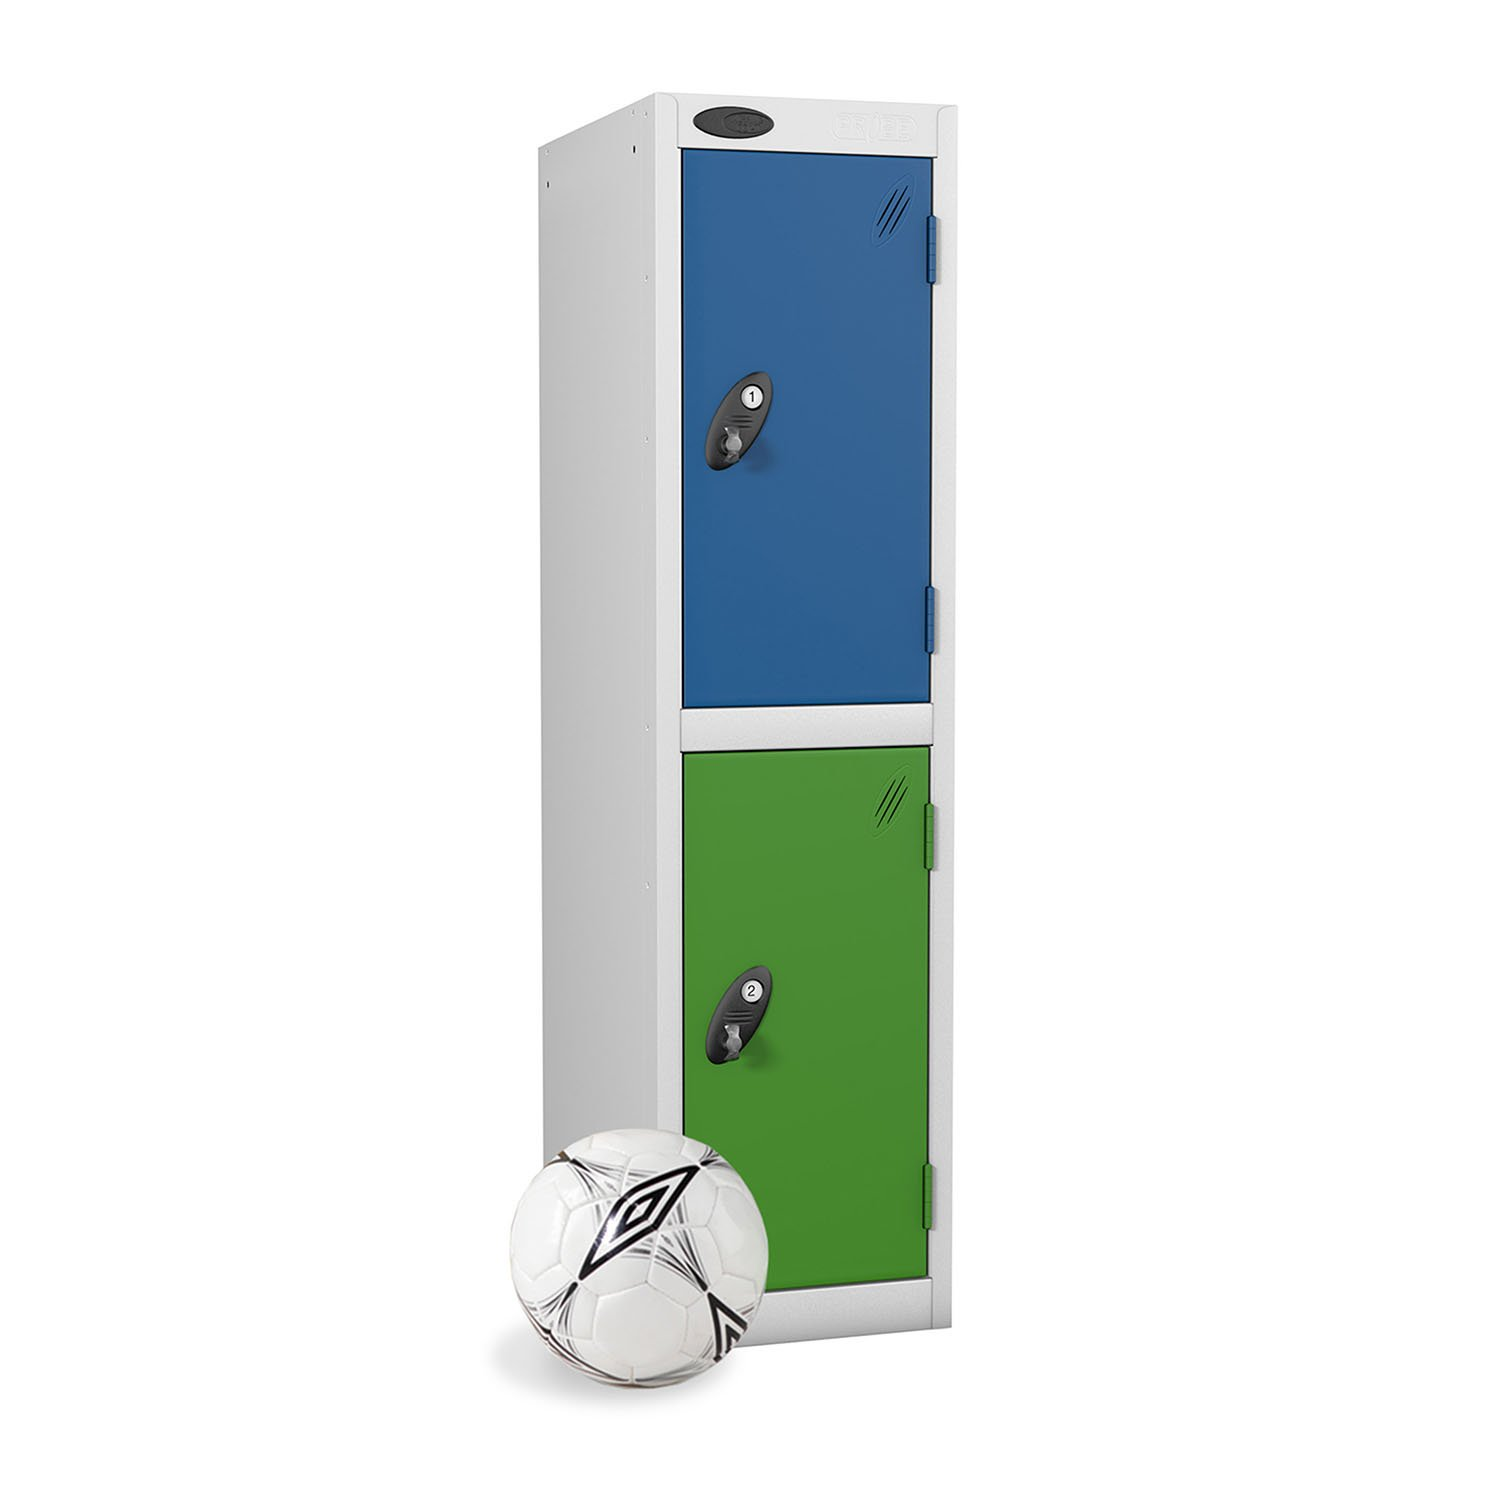 Probe 2 doors low locker in blue and green colour